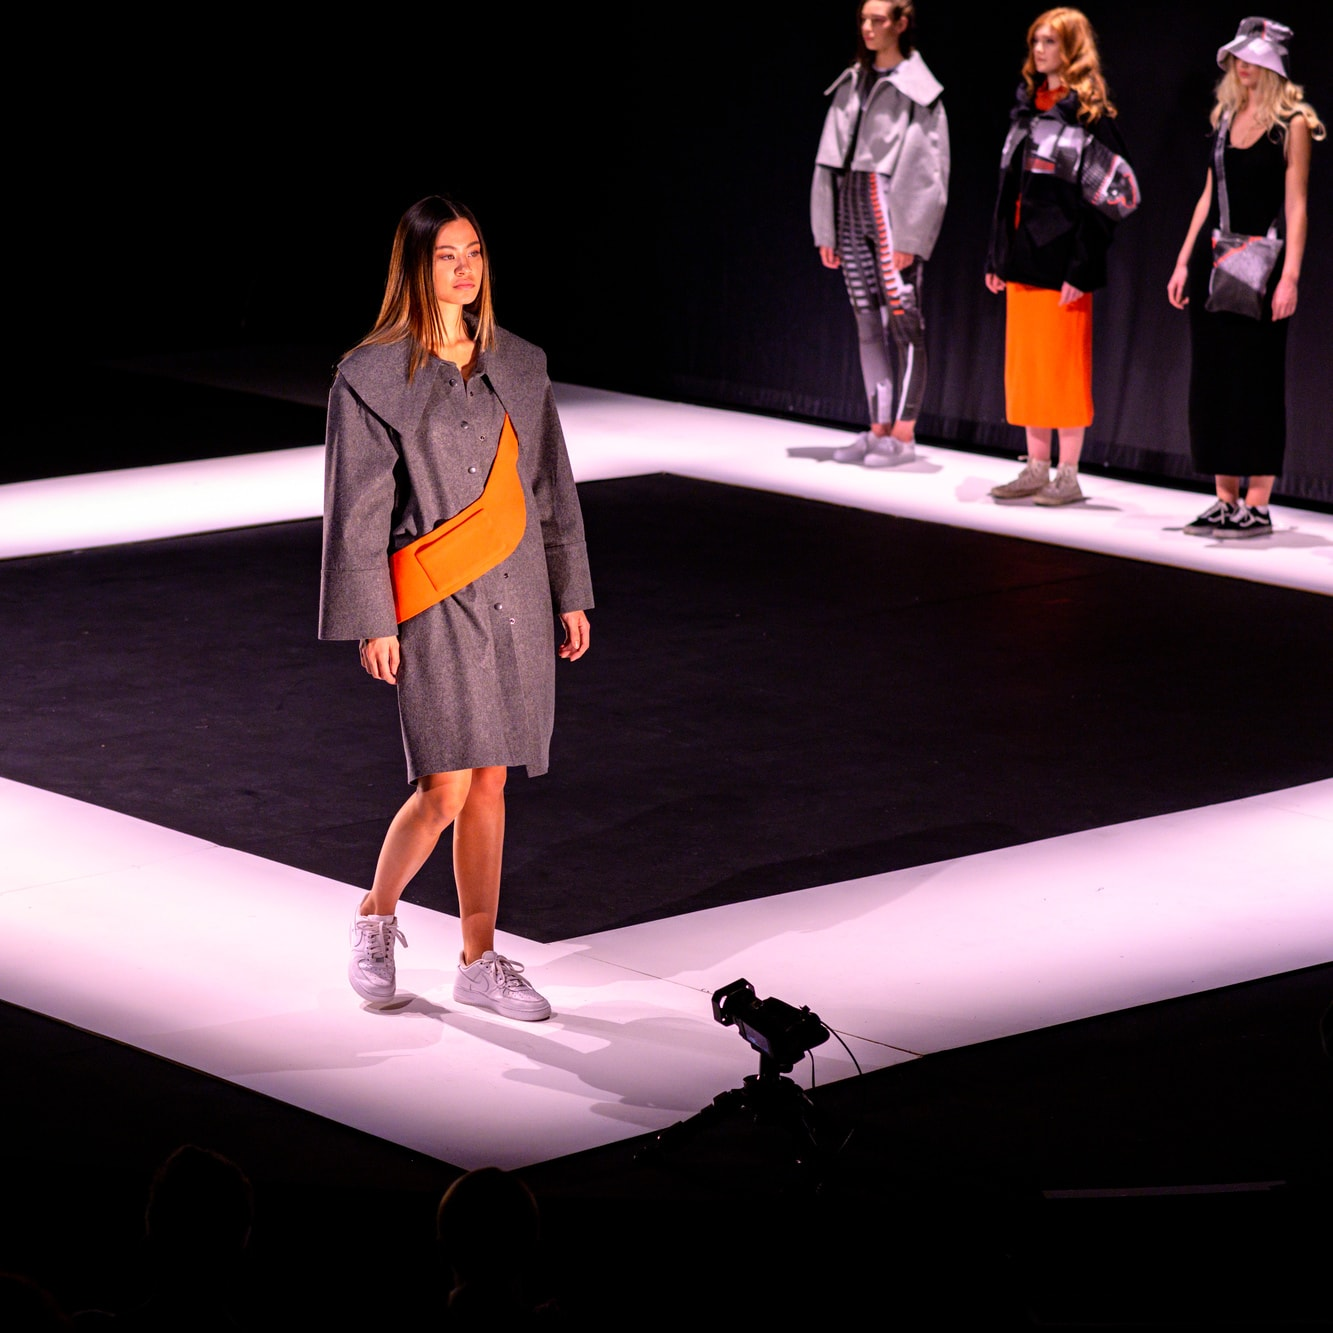 A group of models on a catwalk wearing black, grey and orange designs